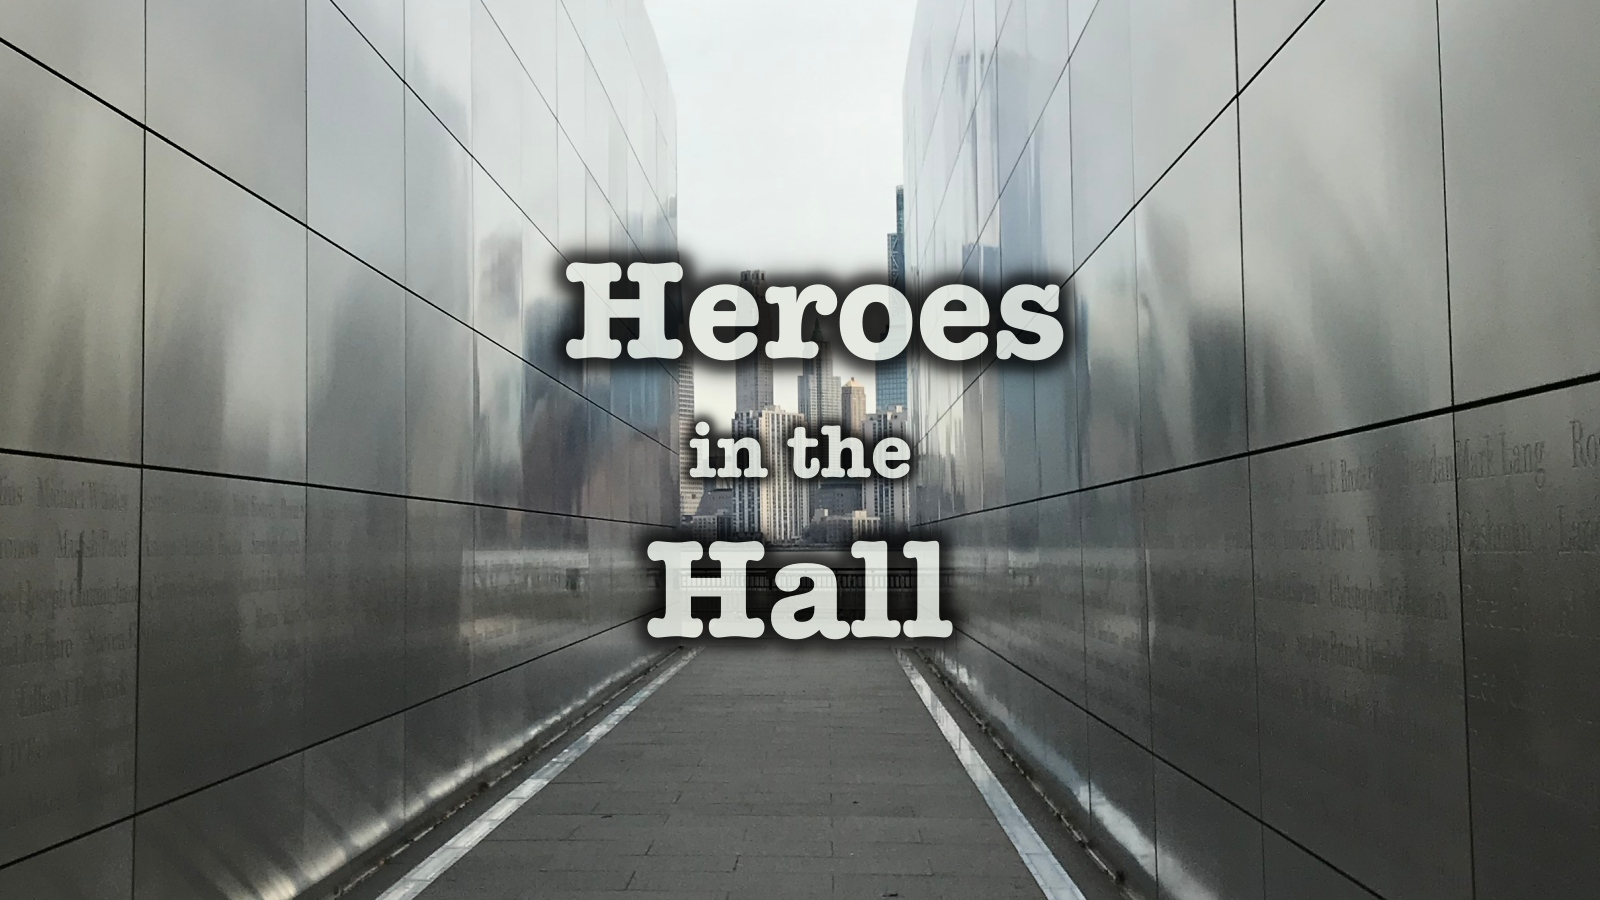 Heroes in the Hall